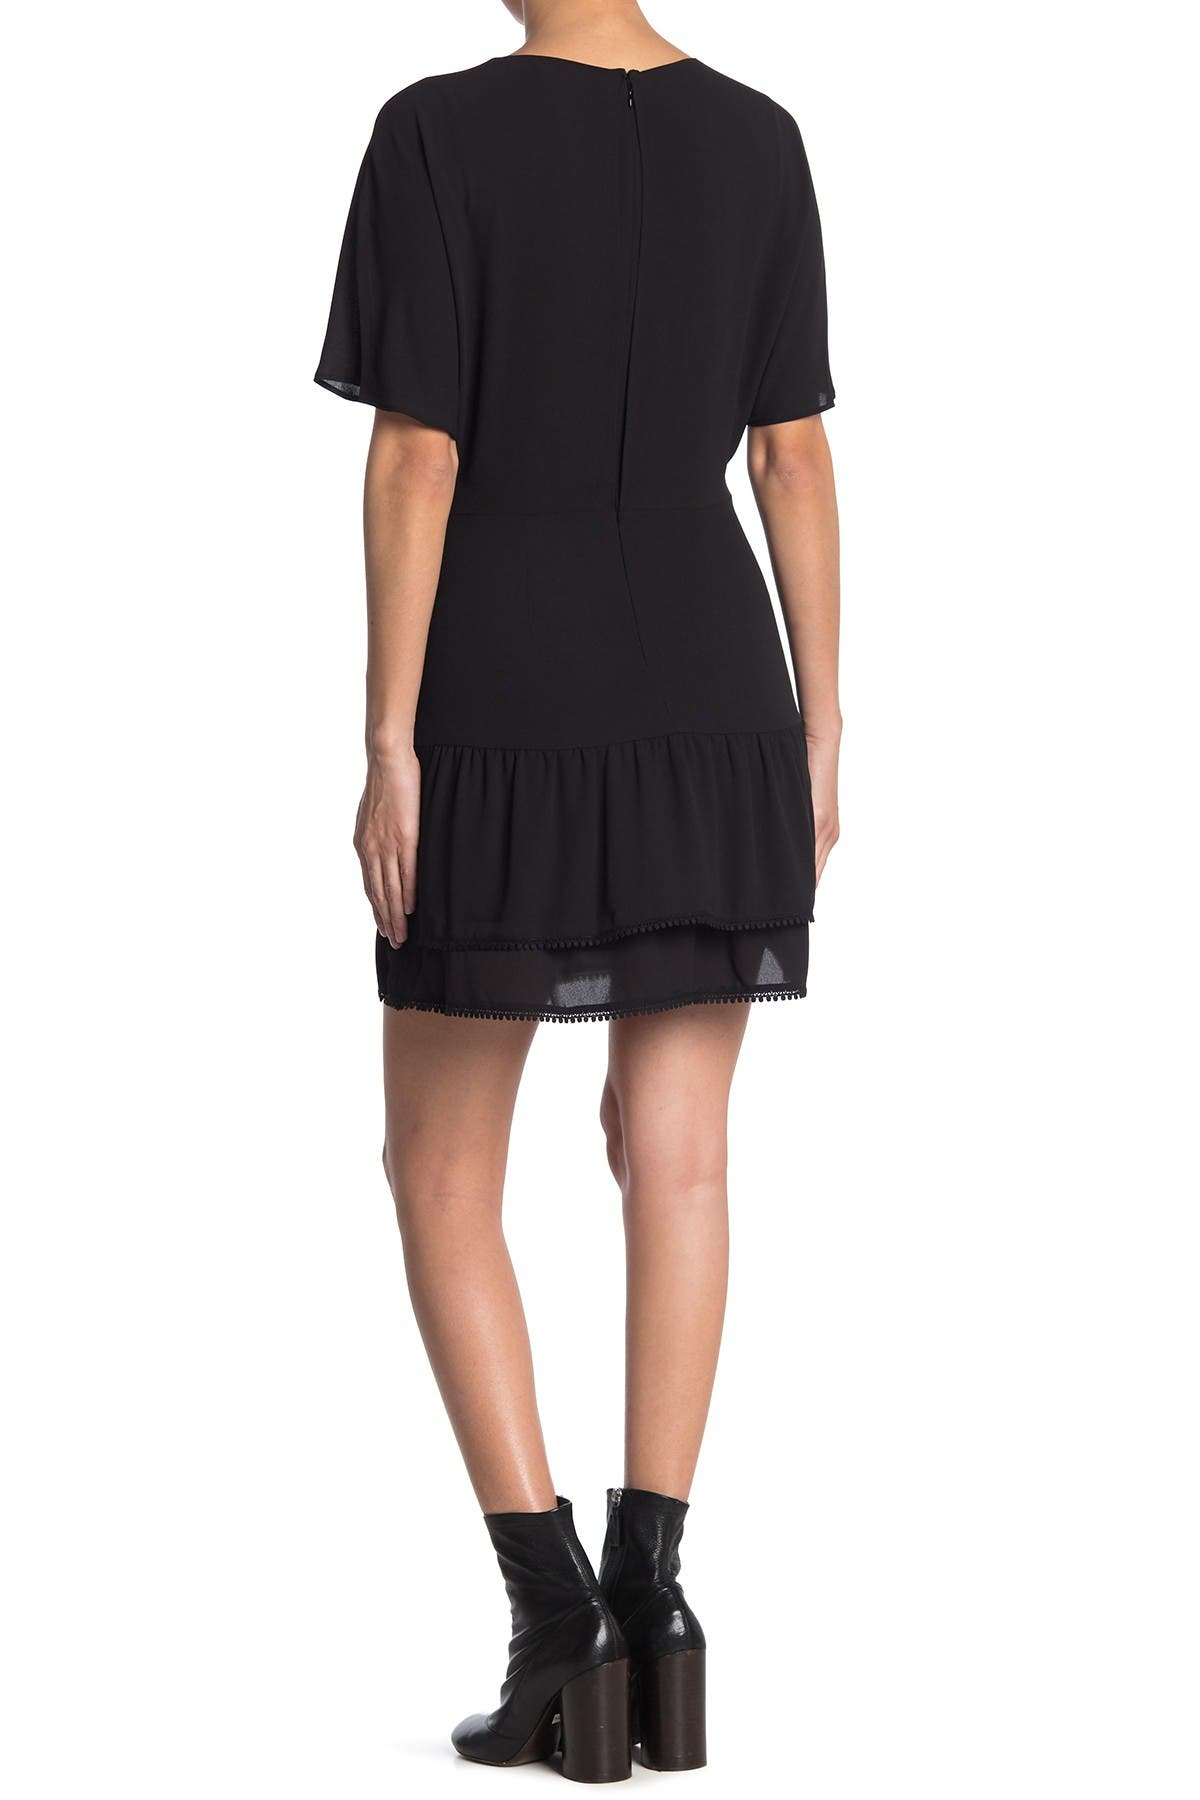 Image of ALLSAINTS Marley V-Neck Short Sleeve Tiered Ruffle Dress